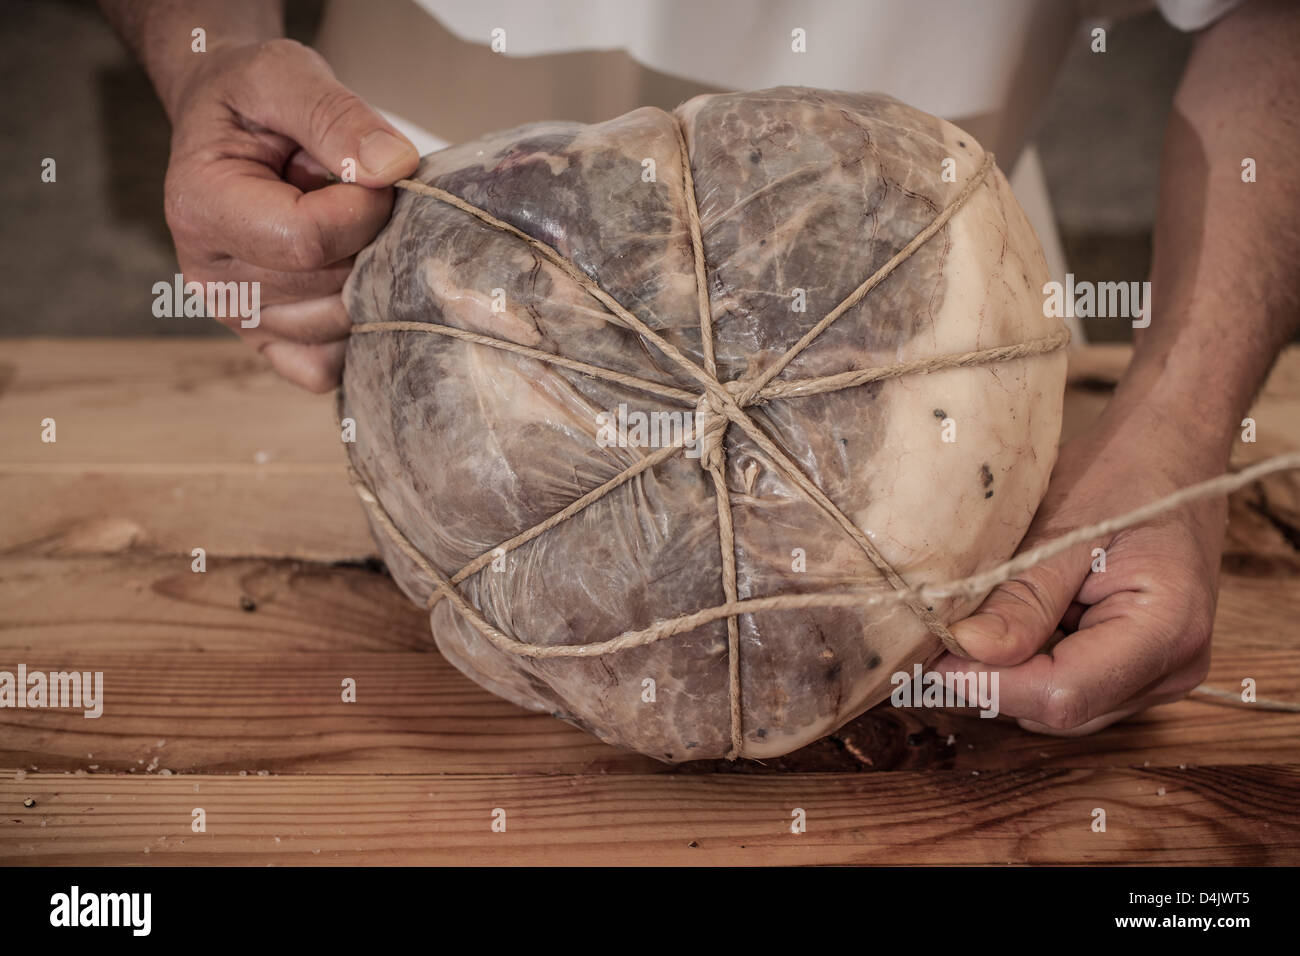 Butcher tying meat in shop - Stock Image